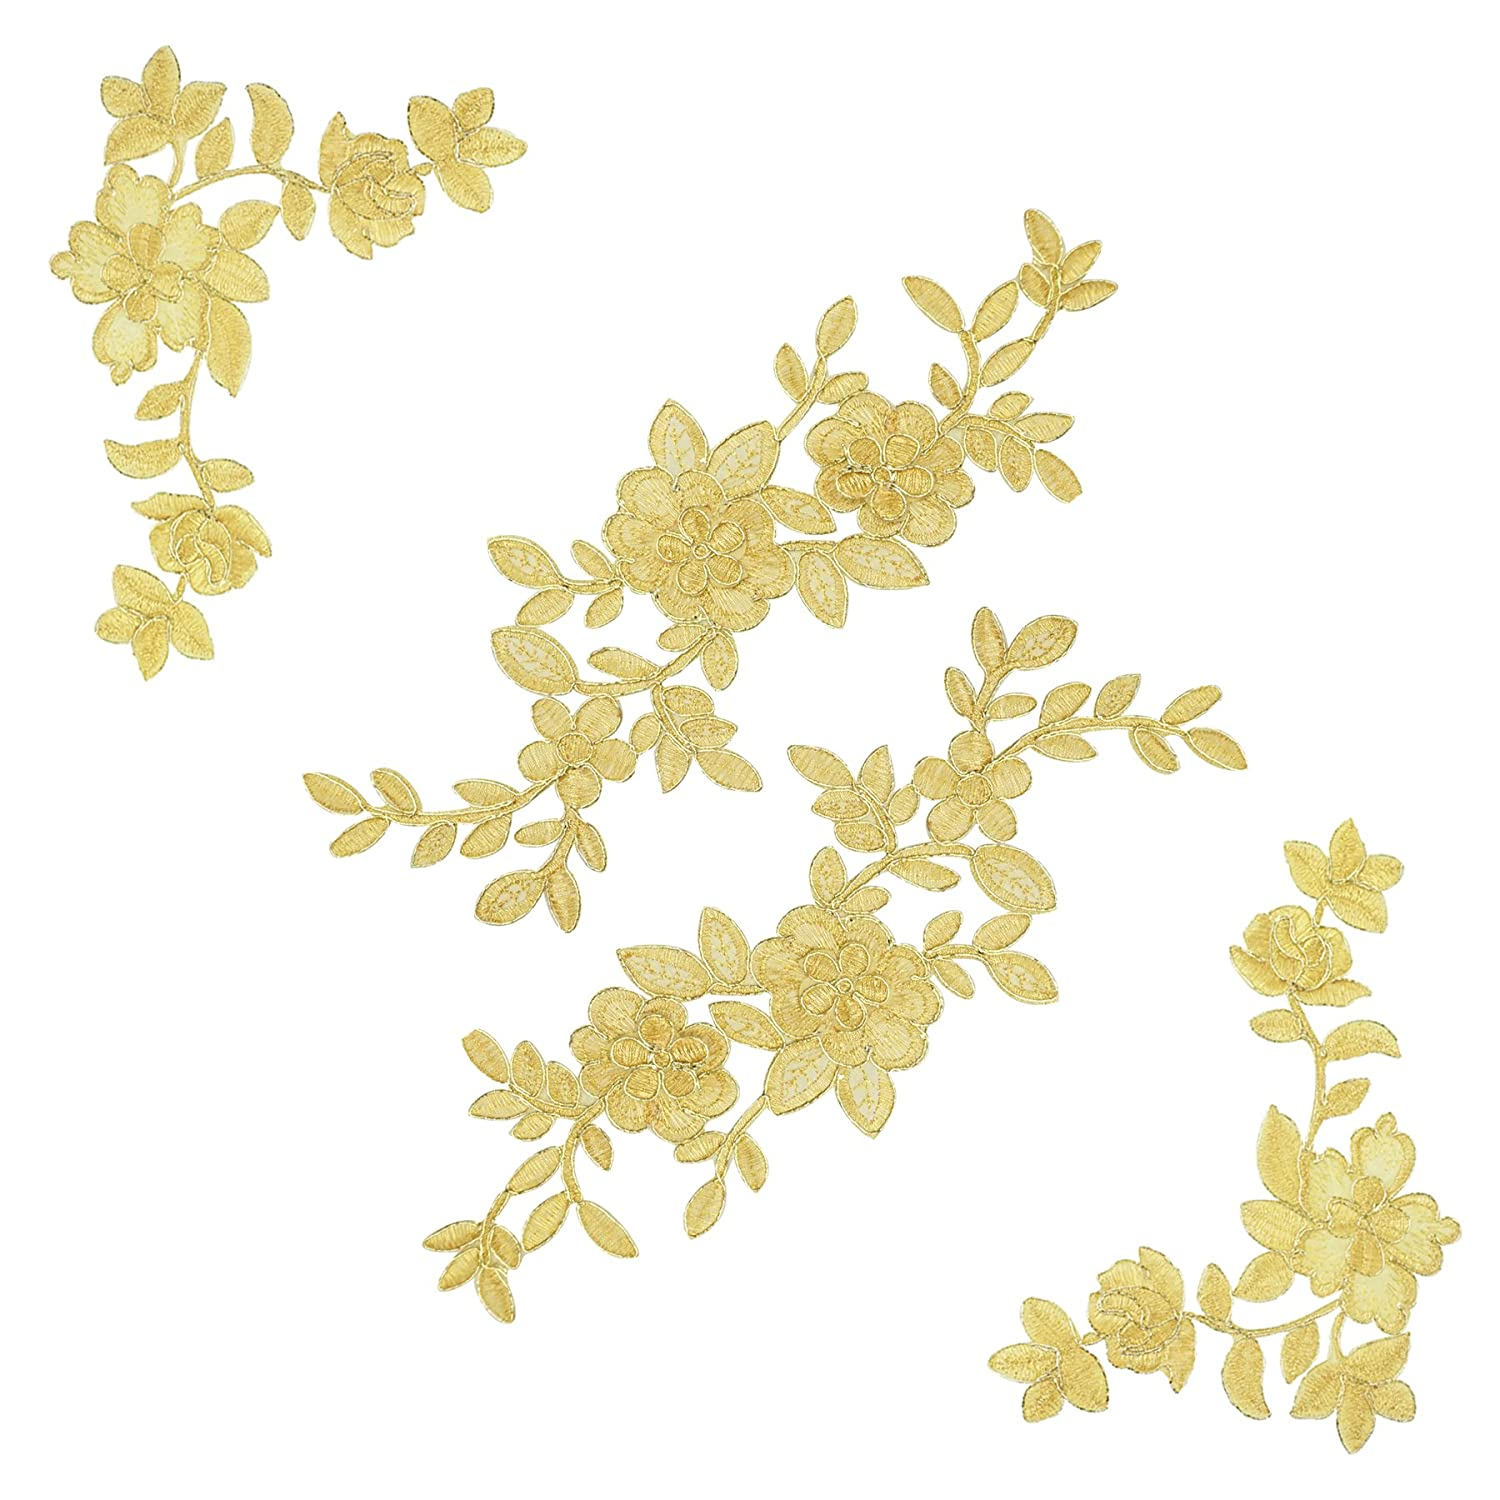 2 Pairs Gold Flower Leaves Lace DIY Appliques Wedding Appliques Embroidered Appliques Patches